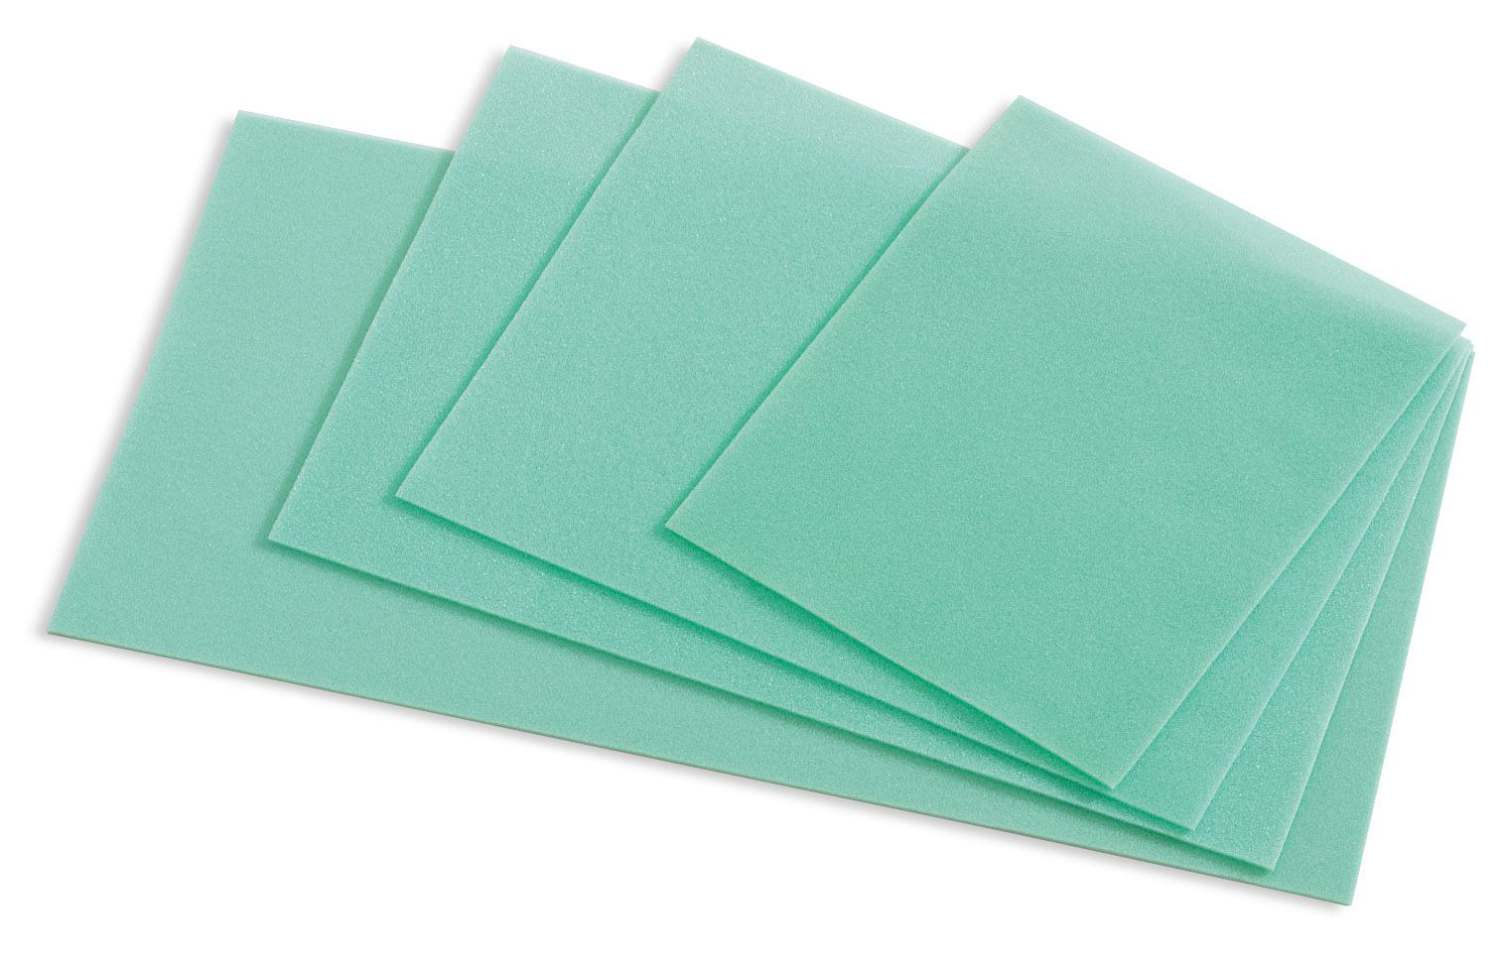 Kendall Instrument Tray Pad - Extra-Fine, Pre-Cut, Reticucel, Box of 150 - Model 31141024